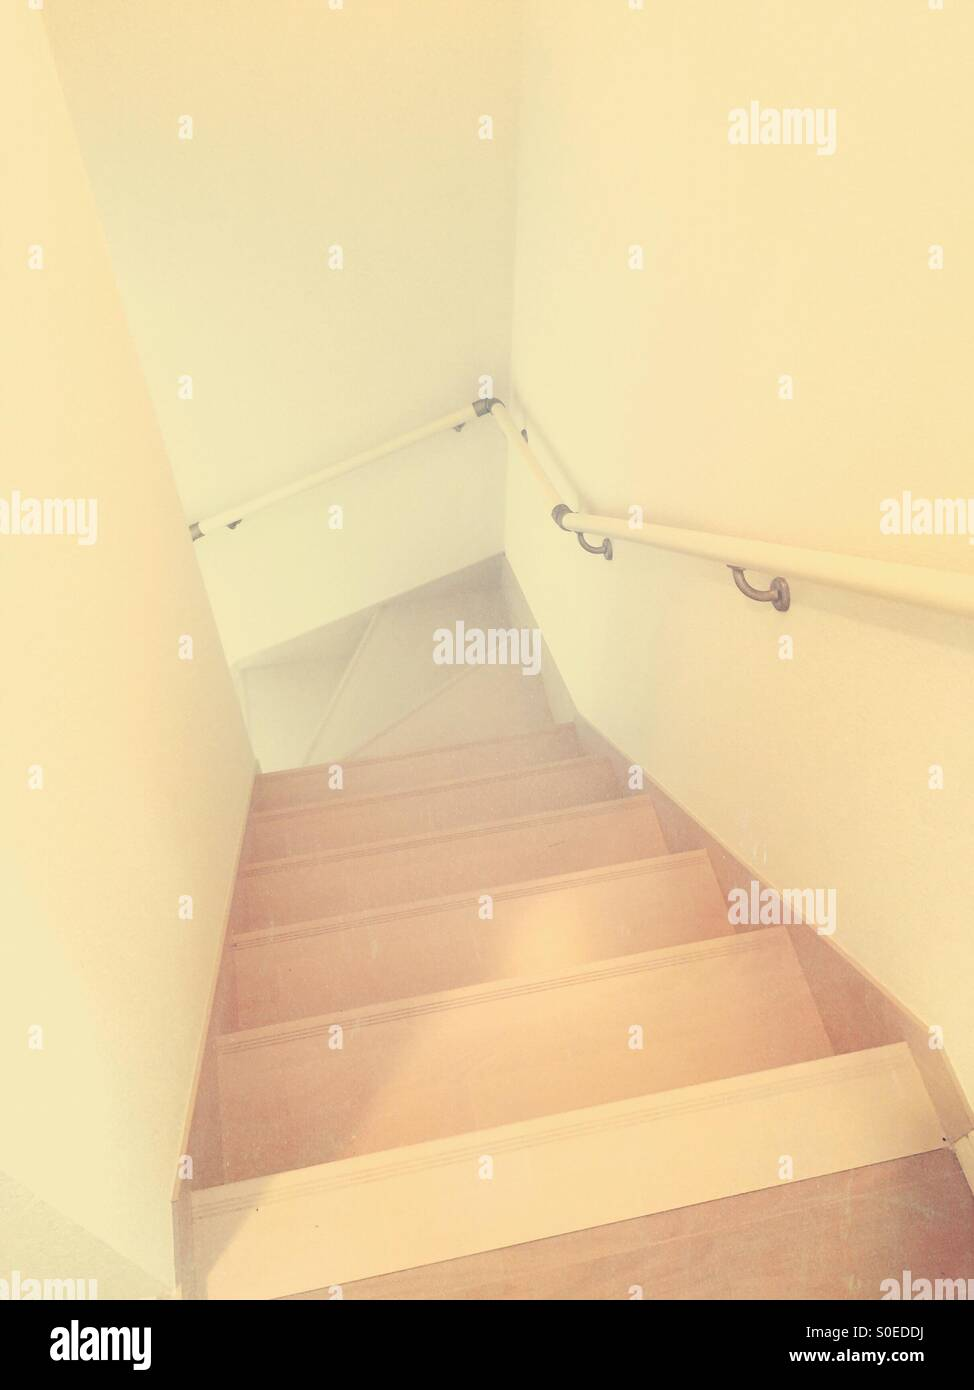 Simple, narrow staircase with light brown wood, white walls and handrail. Vintage paper texture overlay. Stock Photo